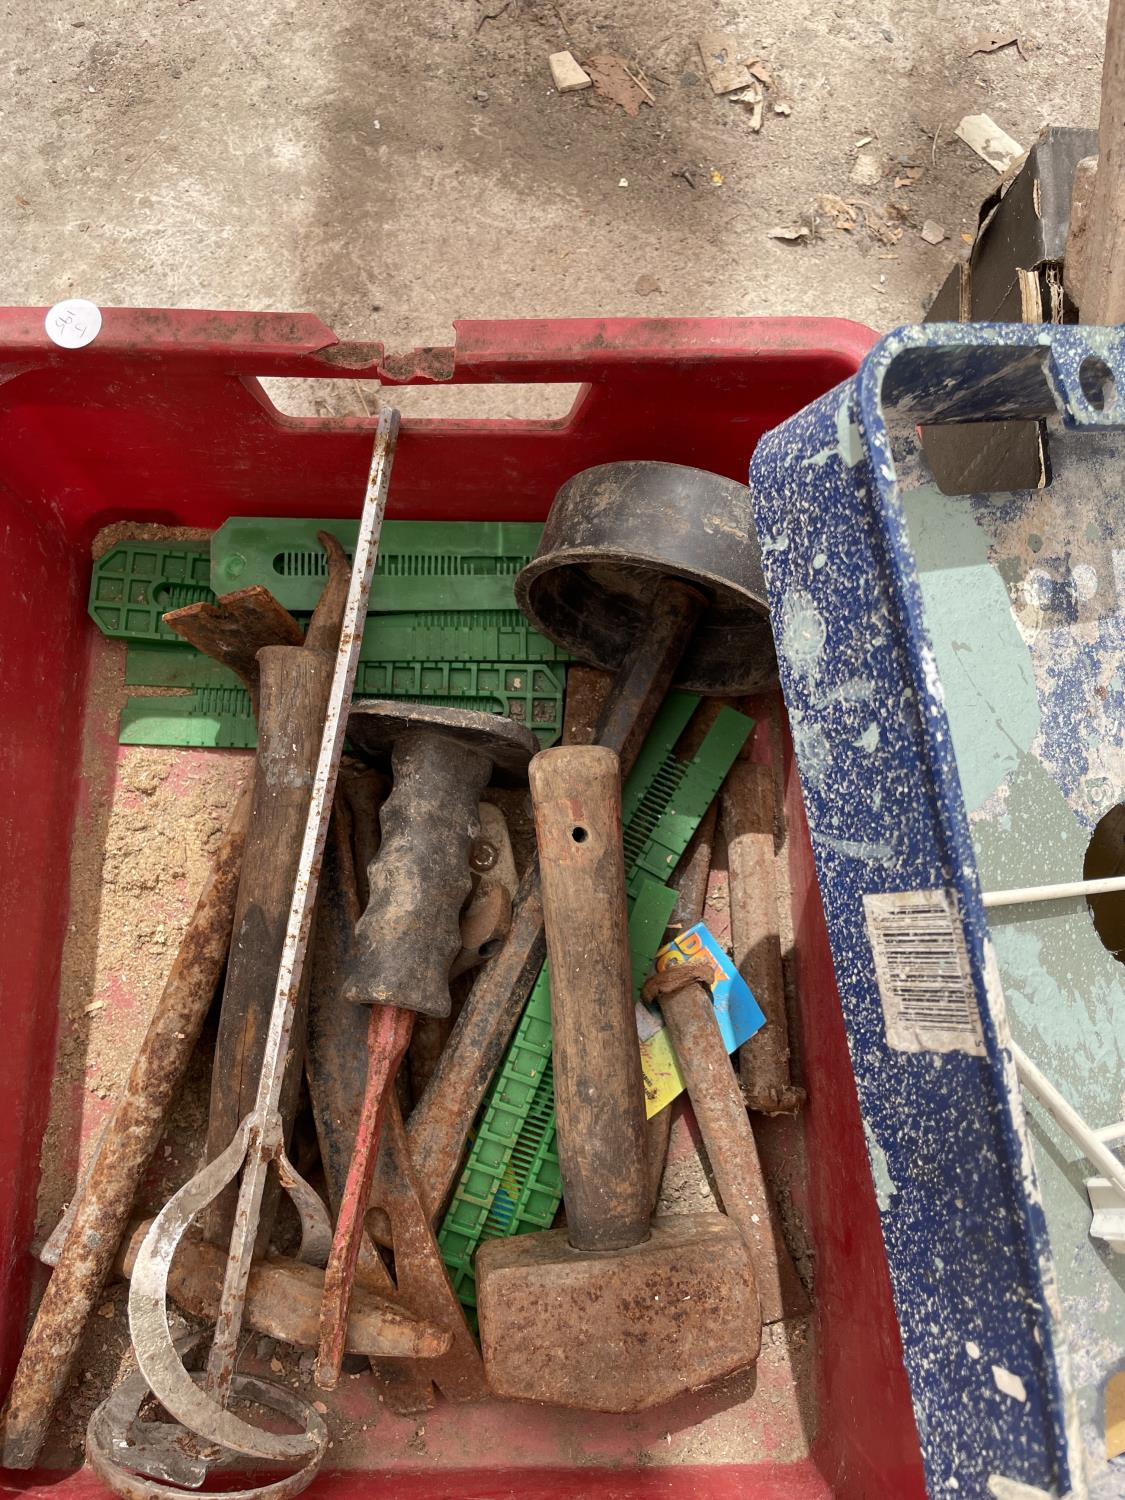 AN ASSORTMENT OF TOOLS TO INCLUDE TROWELS, SHOVELS AND CHISELS ETC - Image 5 of 6